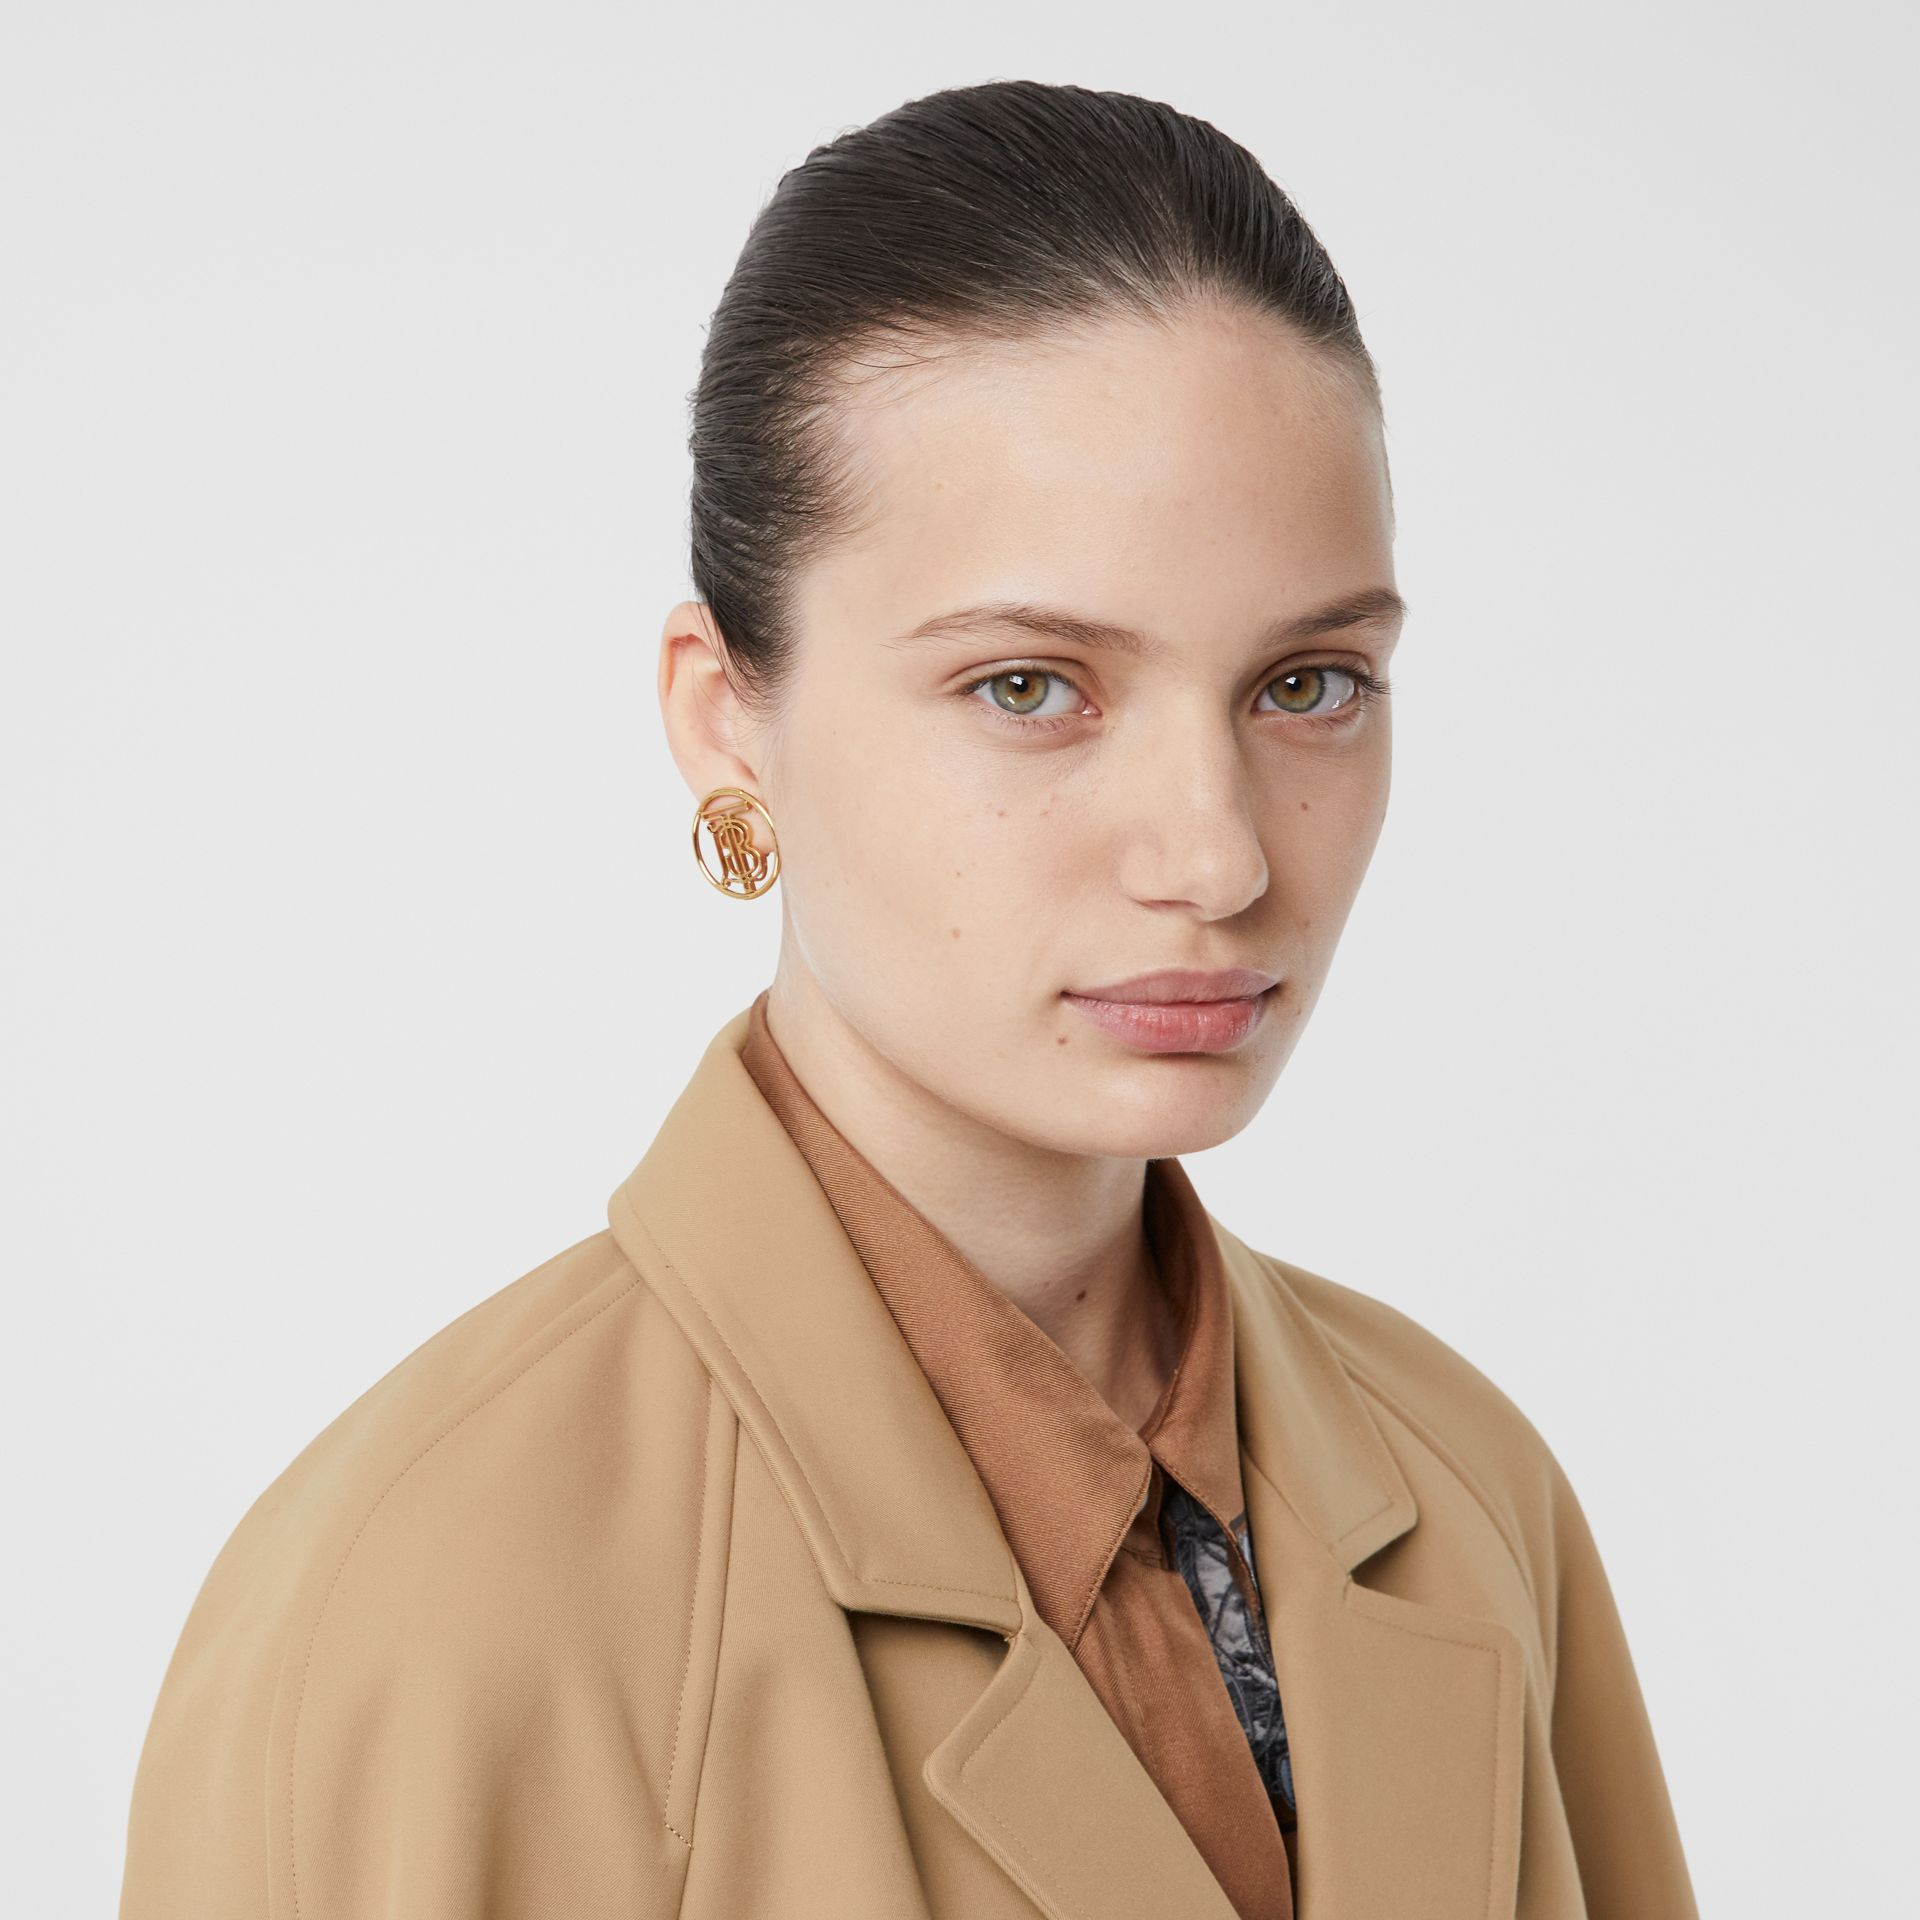 Leather Trim Bonded Cotton Lab Coat in Biscuit - Women | Burberry - gallery image 1